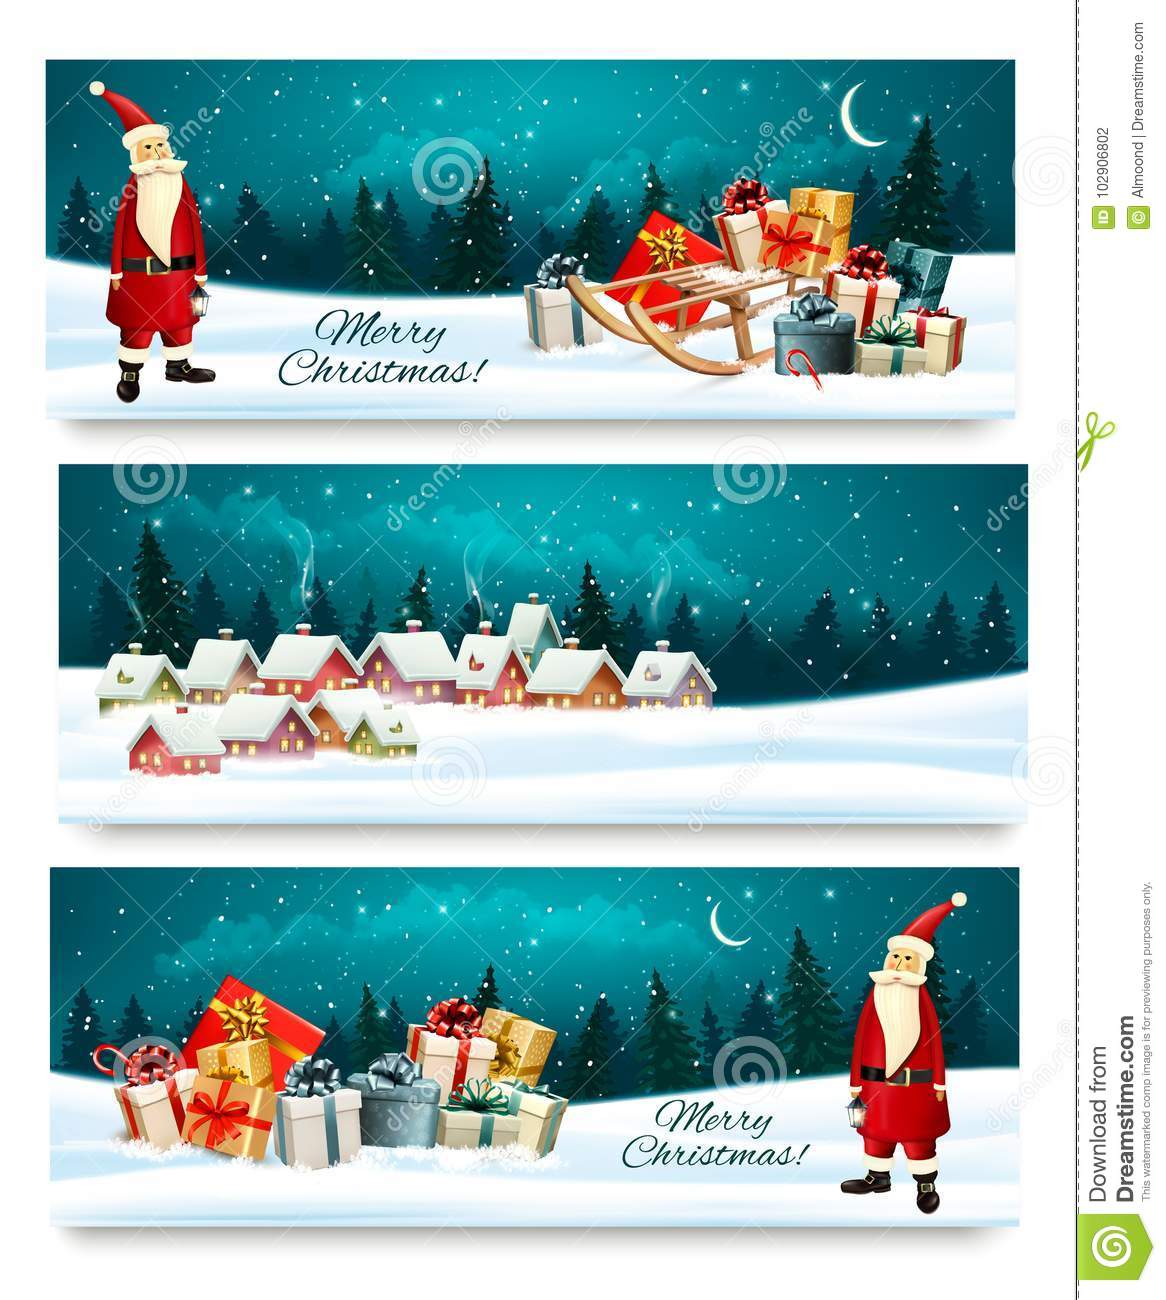 Christmas Banners.Three Holiday Christmas Banners With A Gift Boxes Stock